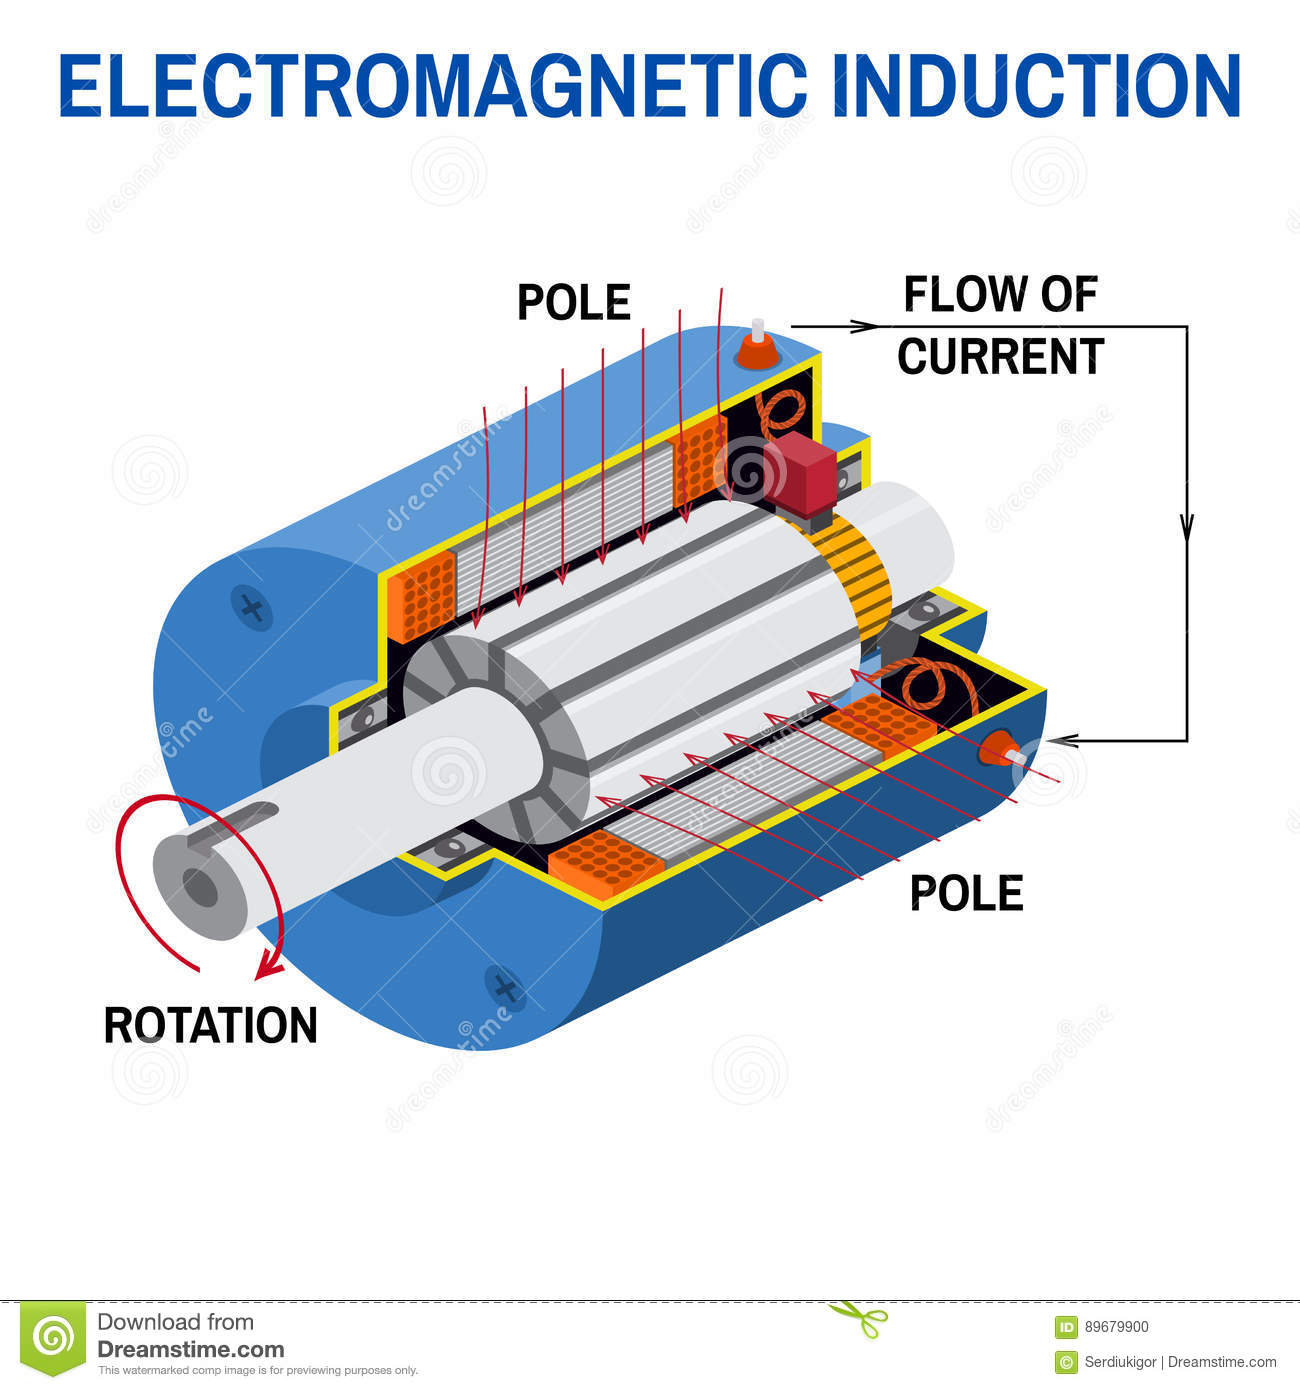 electromagnetic induction While oersted's surprising discovery of electromagnetism paved the way for more practical applications of electricity, it was michael faraday who gave us the key to the practical generation of electricity: electromagnetic induction faraday discovered that a voltage would be generated across a.